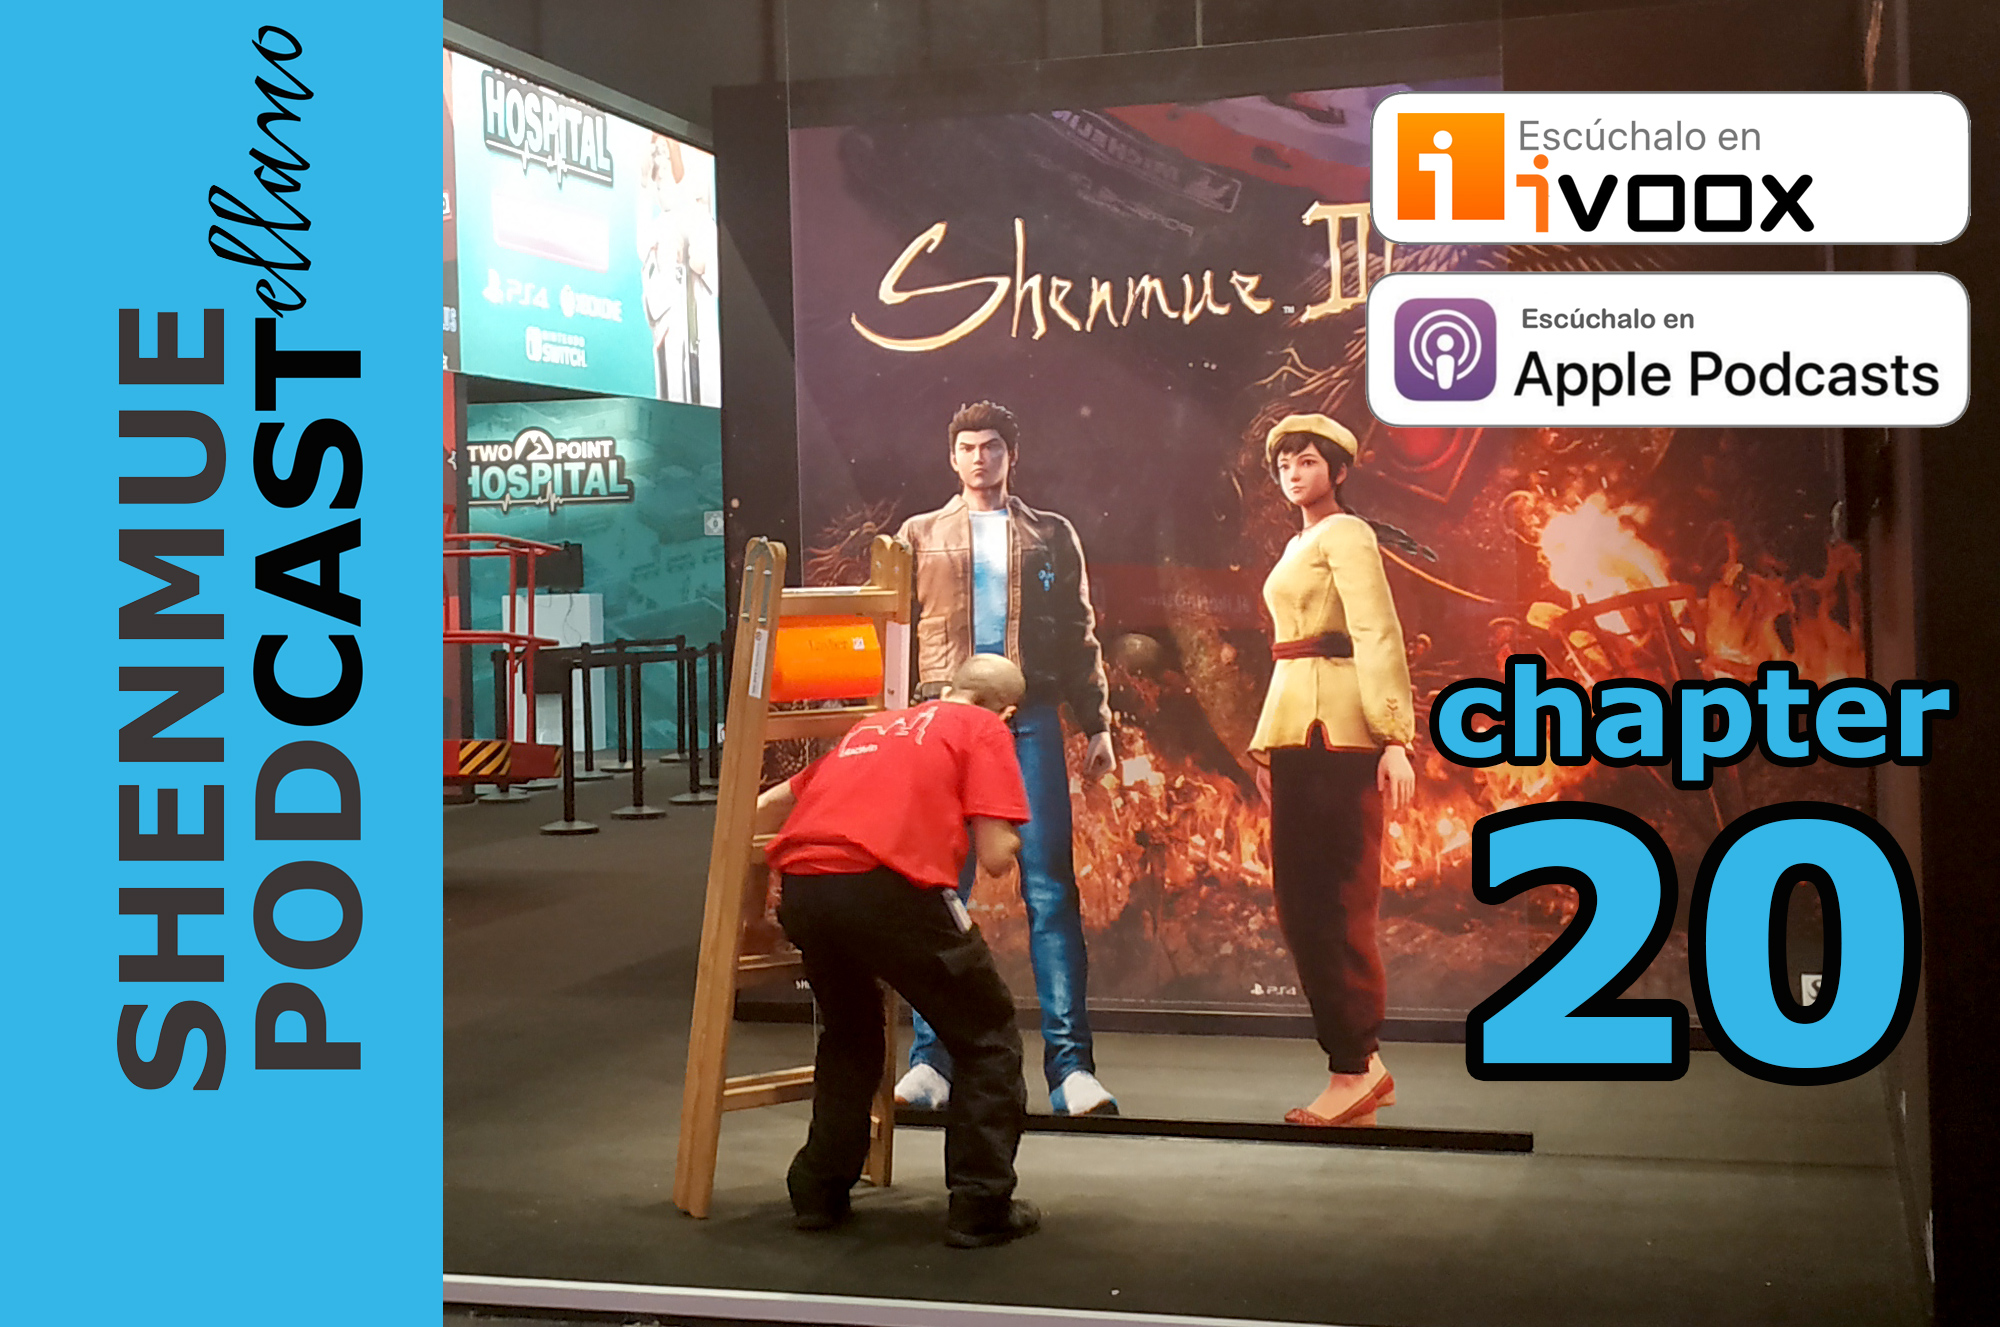 shenmue 3 GAMESCOM 2019 DEEP SILVER BOOTH SHENMUE PODCAST PODCASTELLANO corey marshall actor